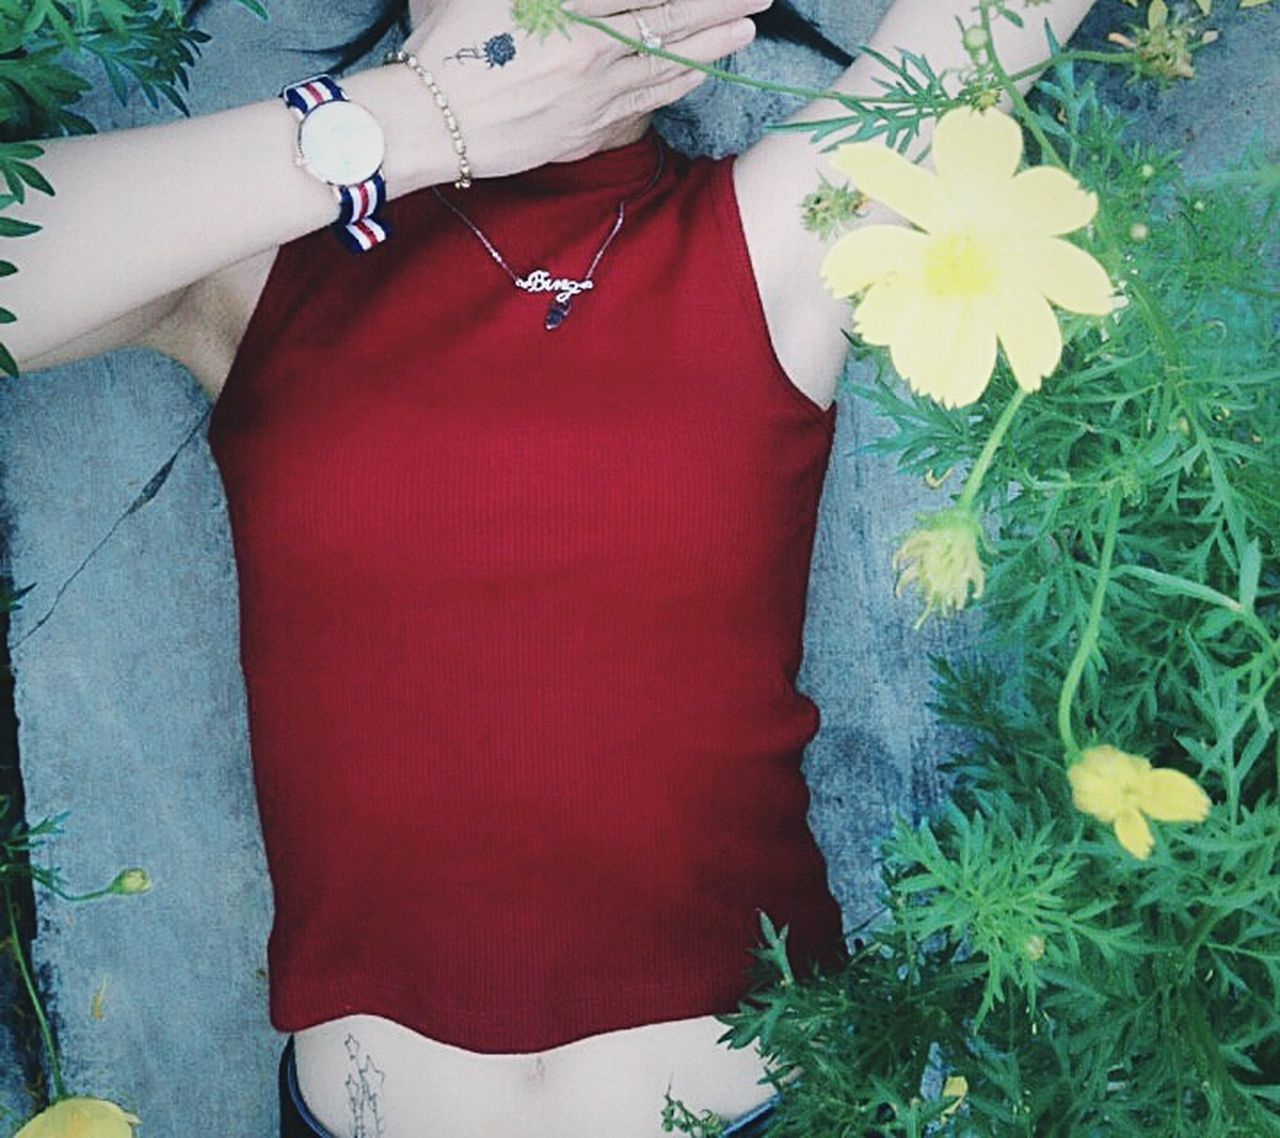 flower, outdoors, one person, midsection, day, plant, real people, red, close-up, nature, human body part, human hand, women, people